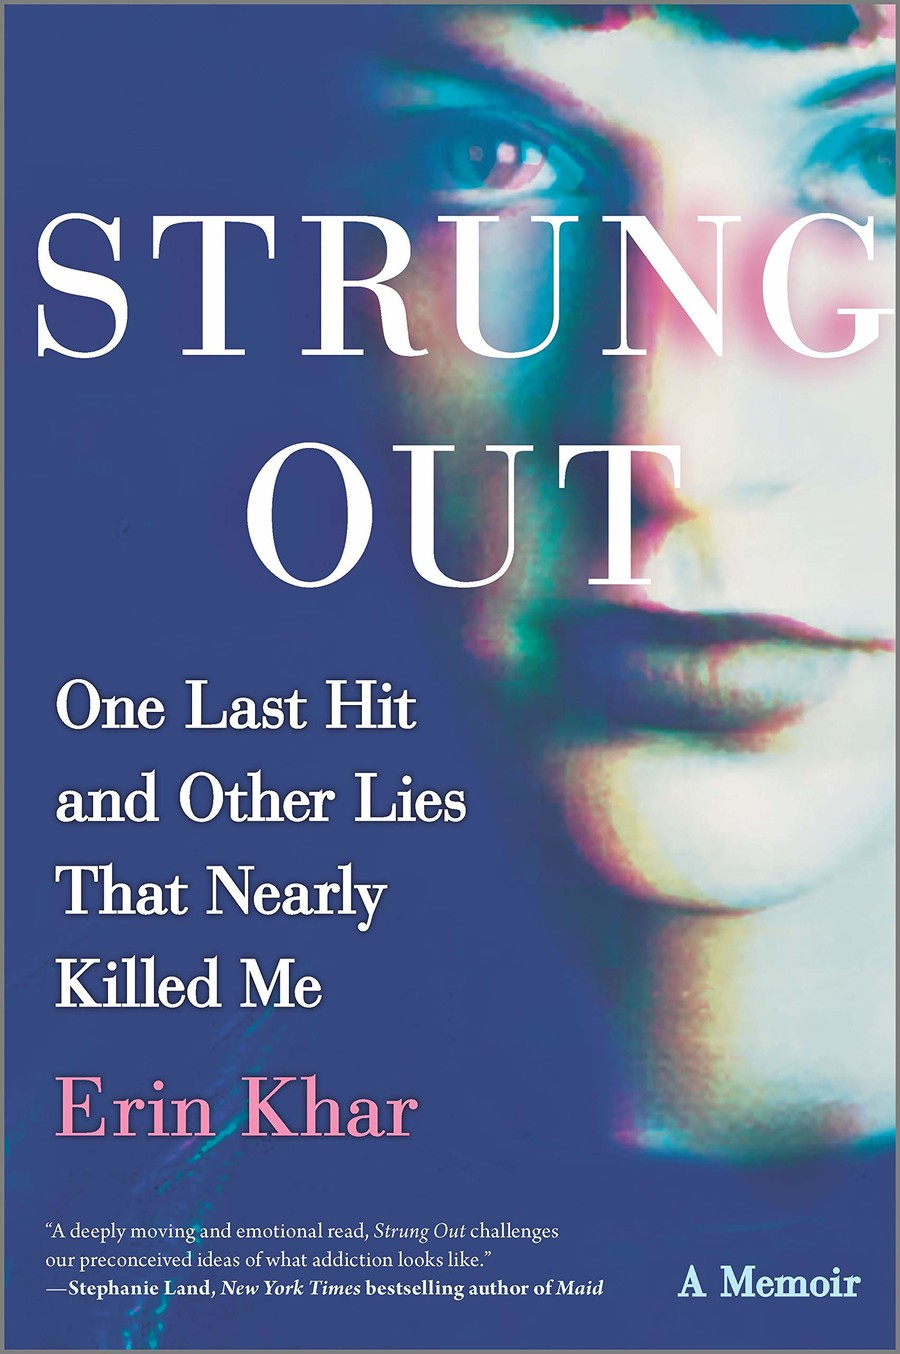 Strung Out, a blue book covers that features a digital portrait of a white woman staring intently at the camera